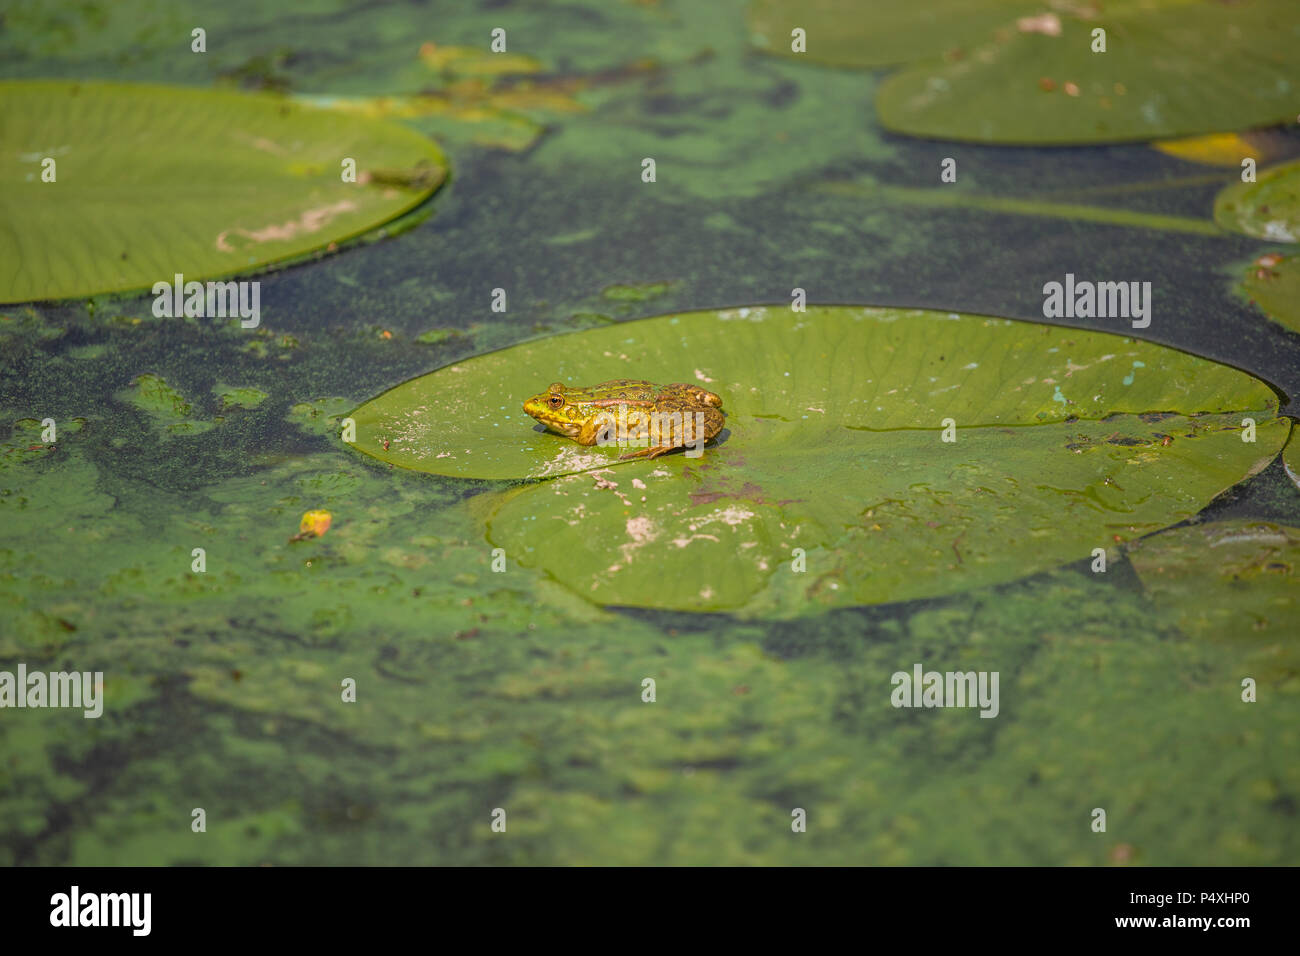 Europe common Pelophylax ridibundus, marsh frog sitting on green leaf - Stock Image